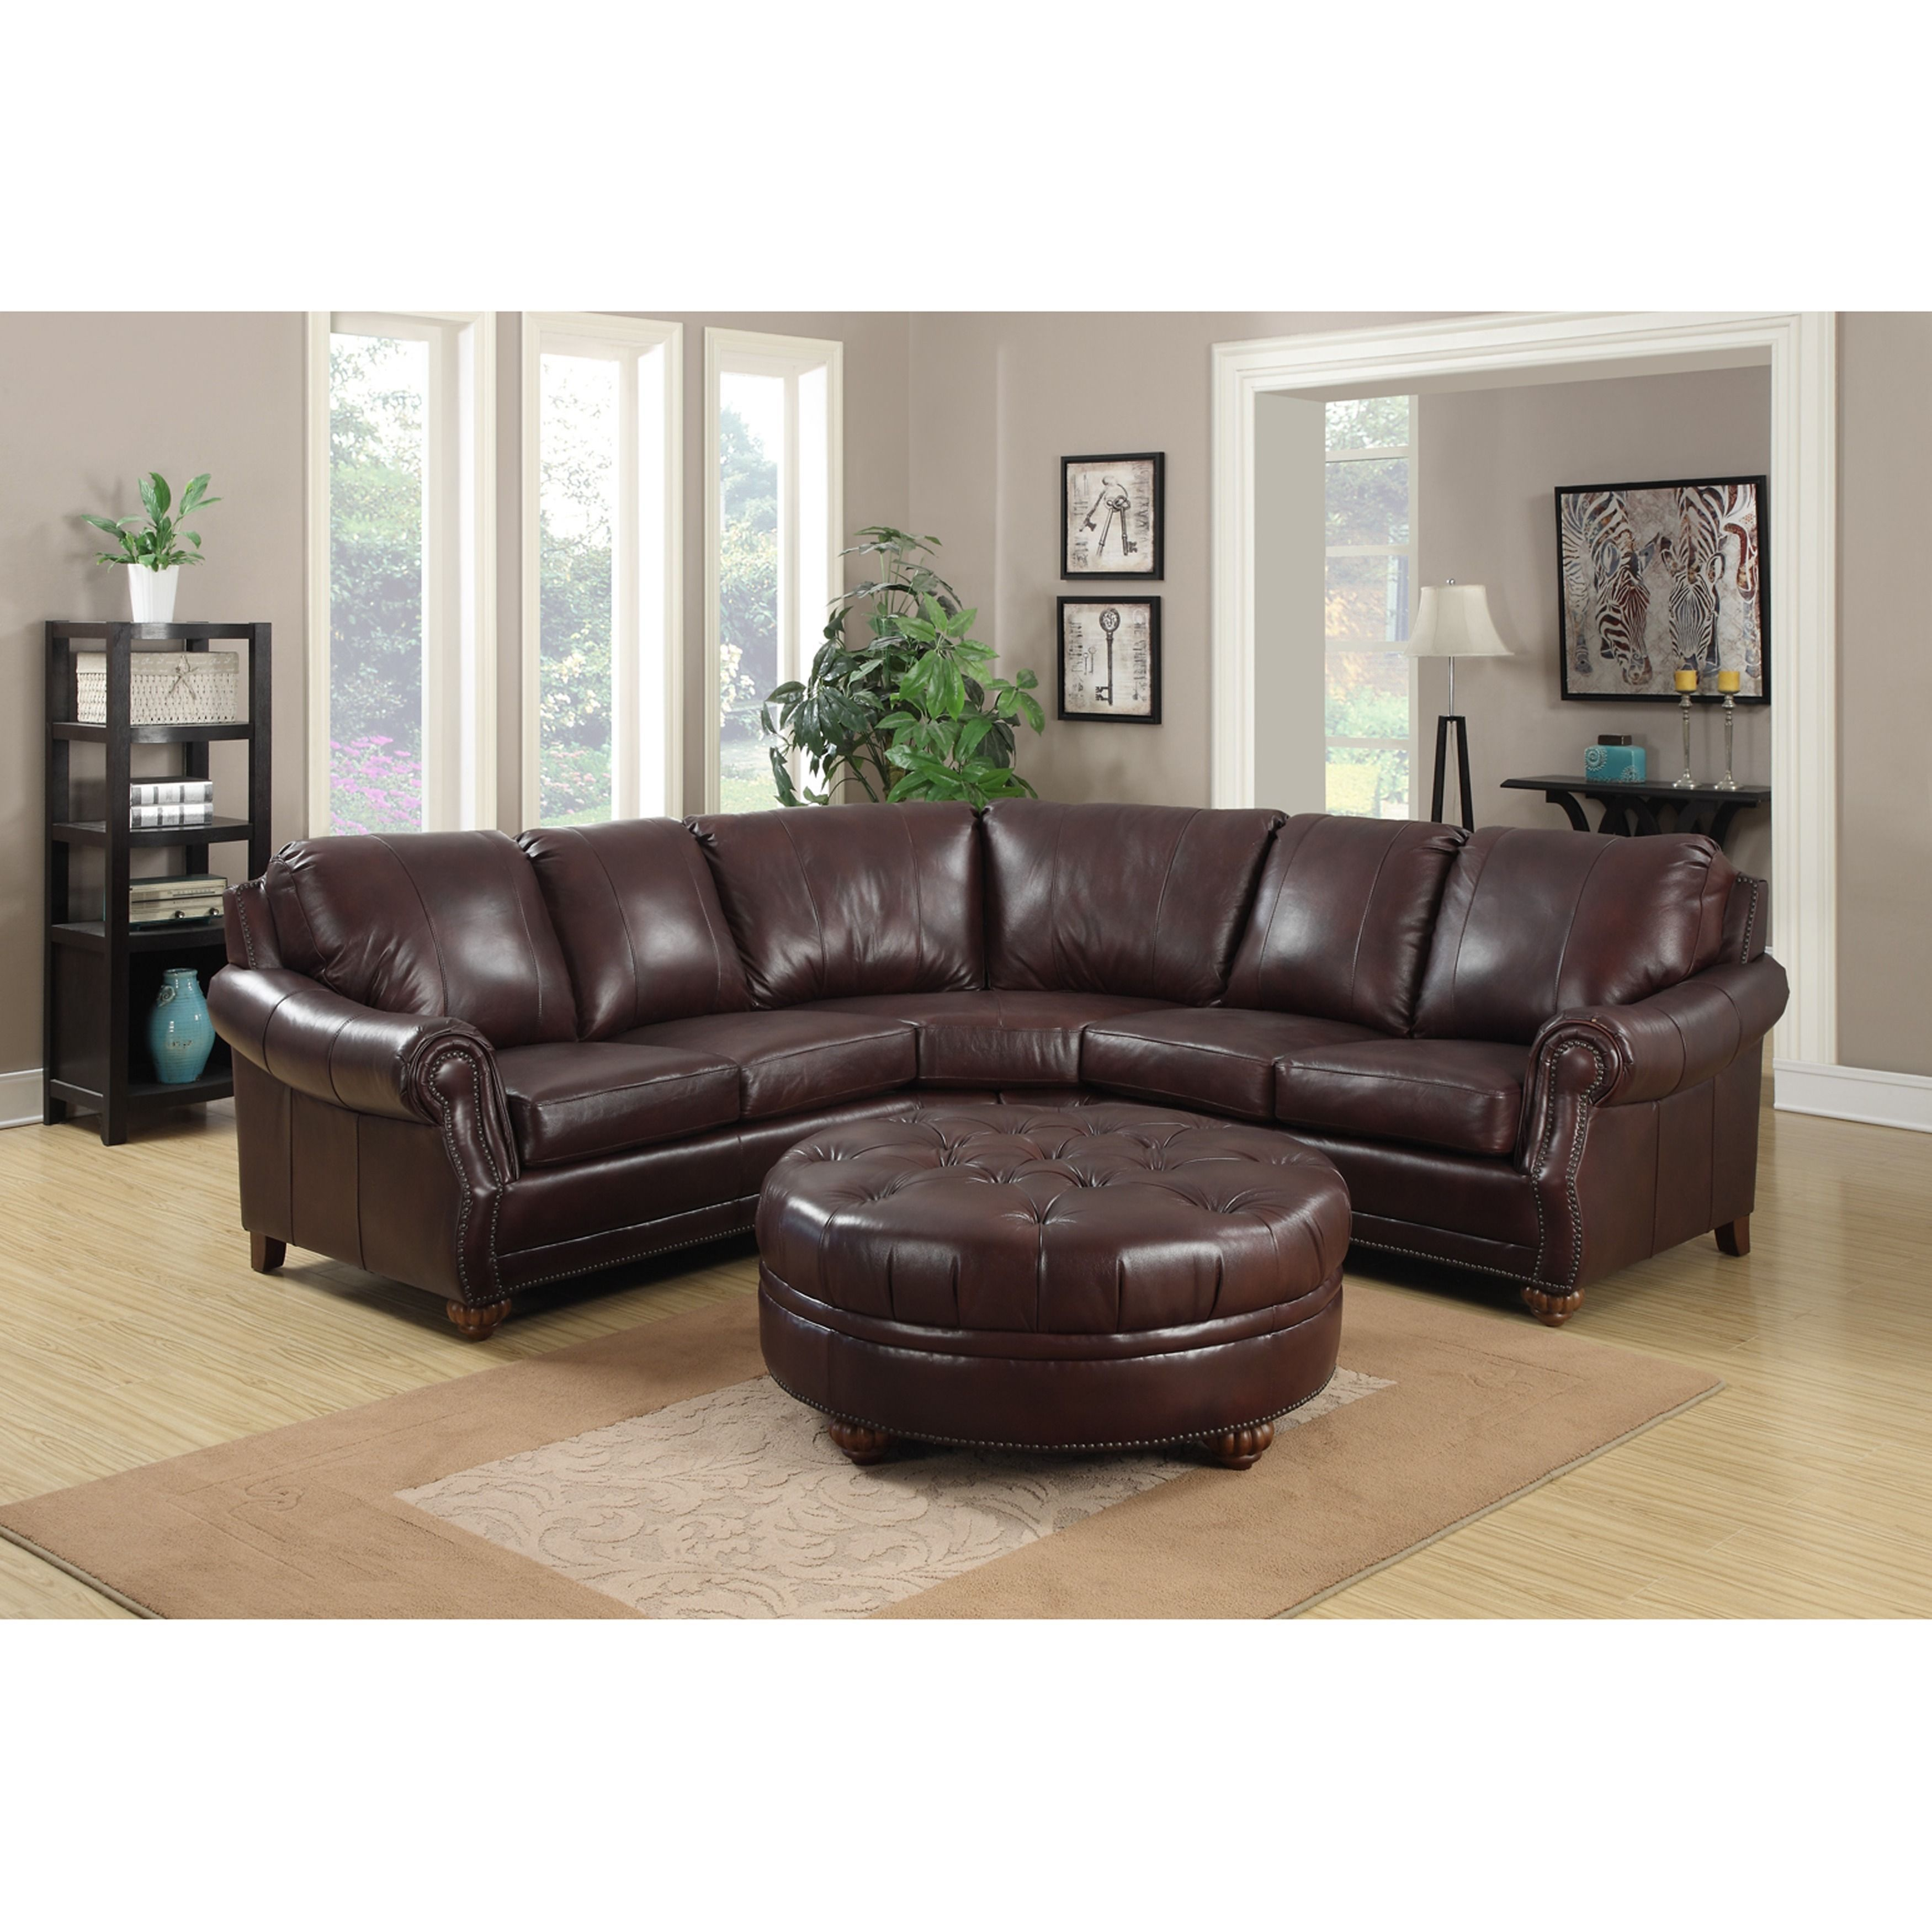 Peachy Troy Chestnut Brown Italian Leather Sectional Sofa And Unemploymentrelief Wooden Chair Designs For Living Room Unemploymentrelieforg